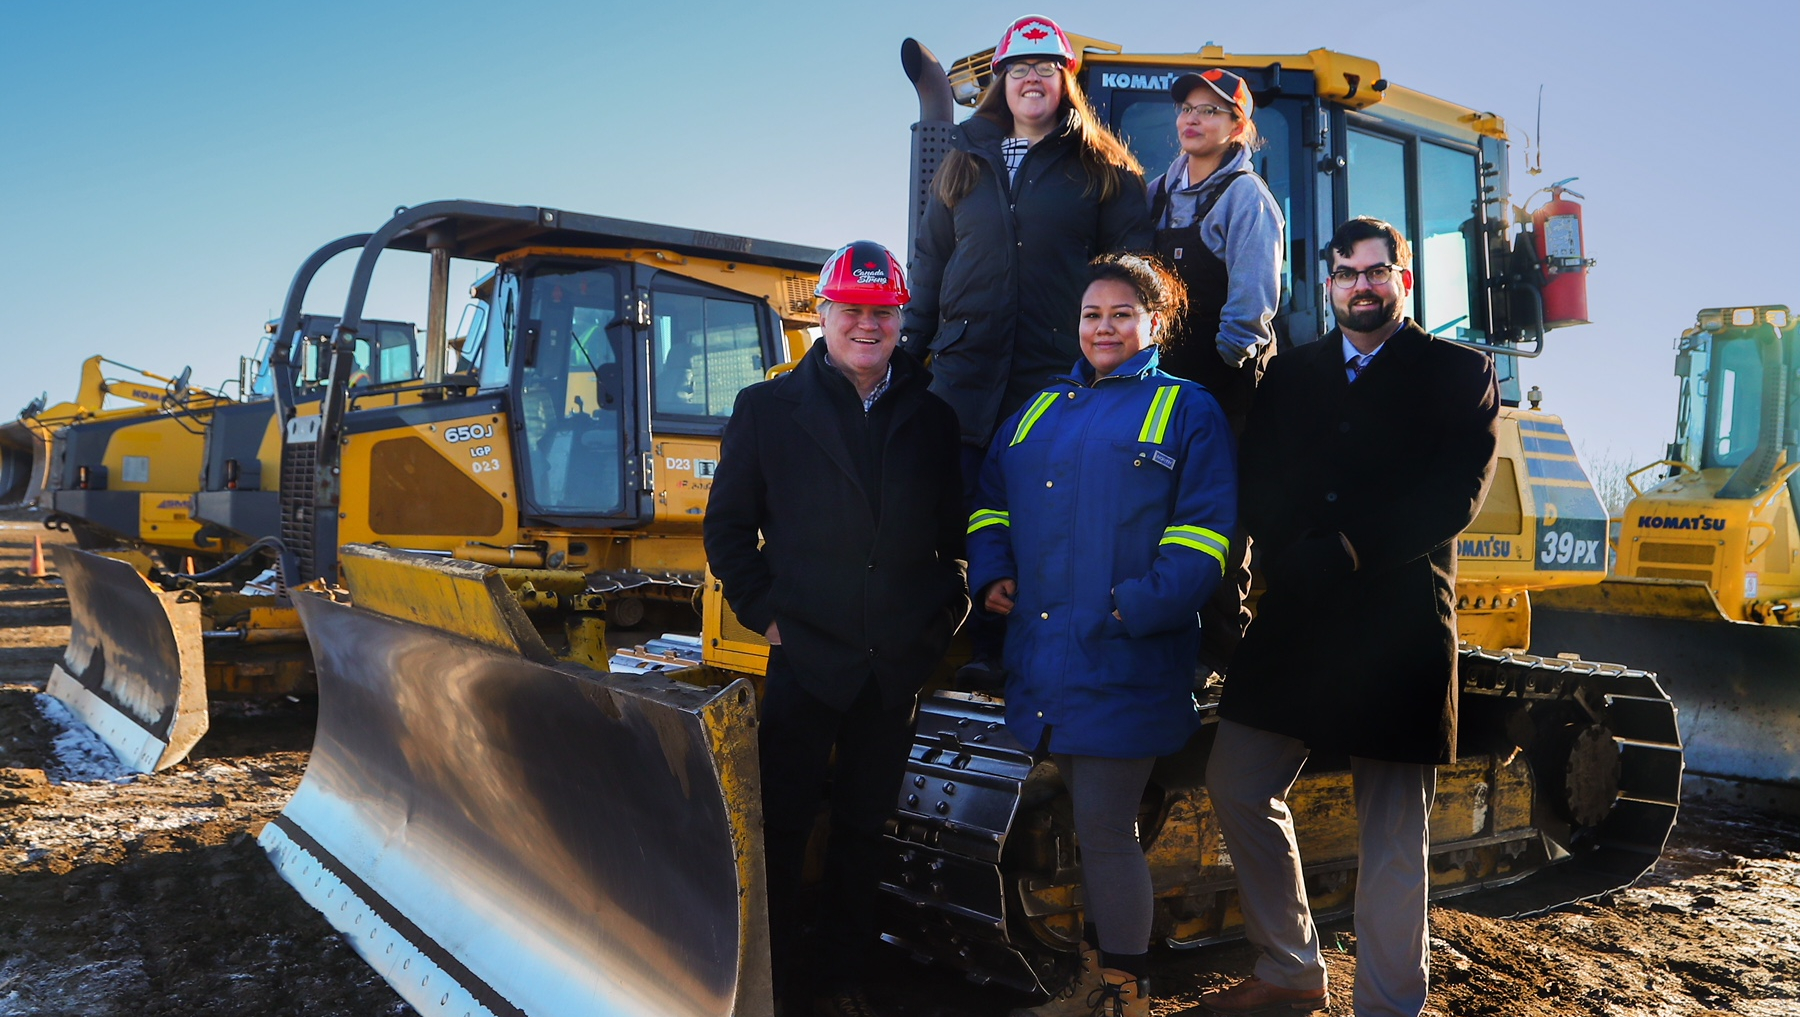 indigenous women provided heavy equipment operator